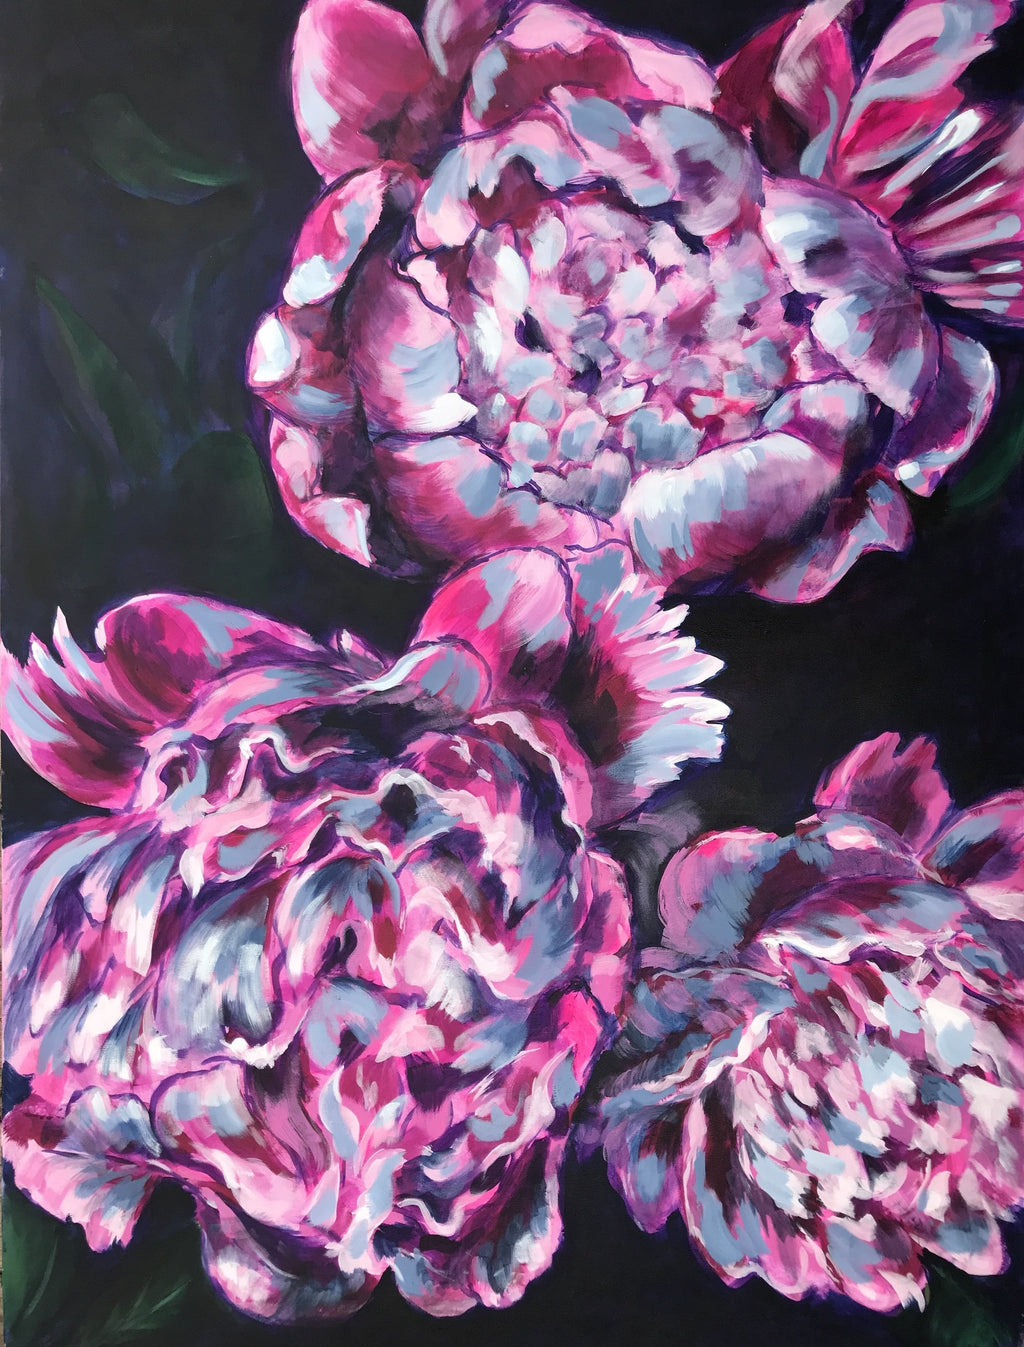 PEONY TRILOGY | 36x48 | ORIGINAL ACRYLIC PAINTING ON CANVAS | Item number 19-13P